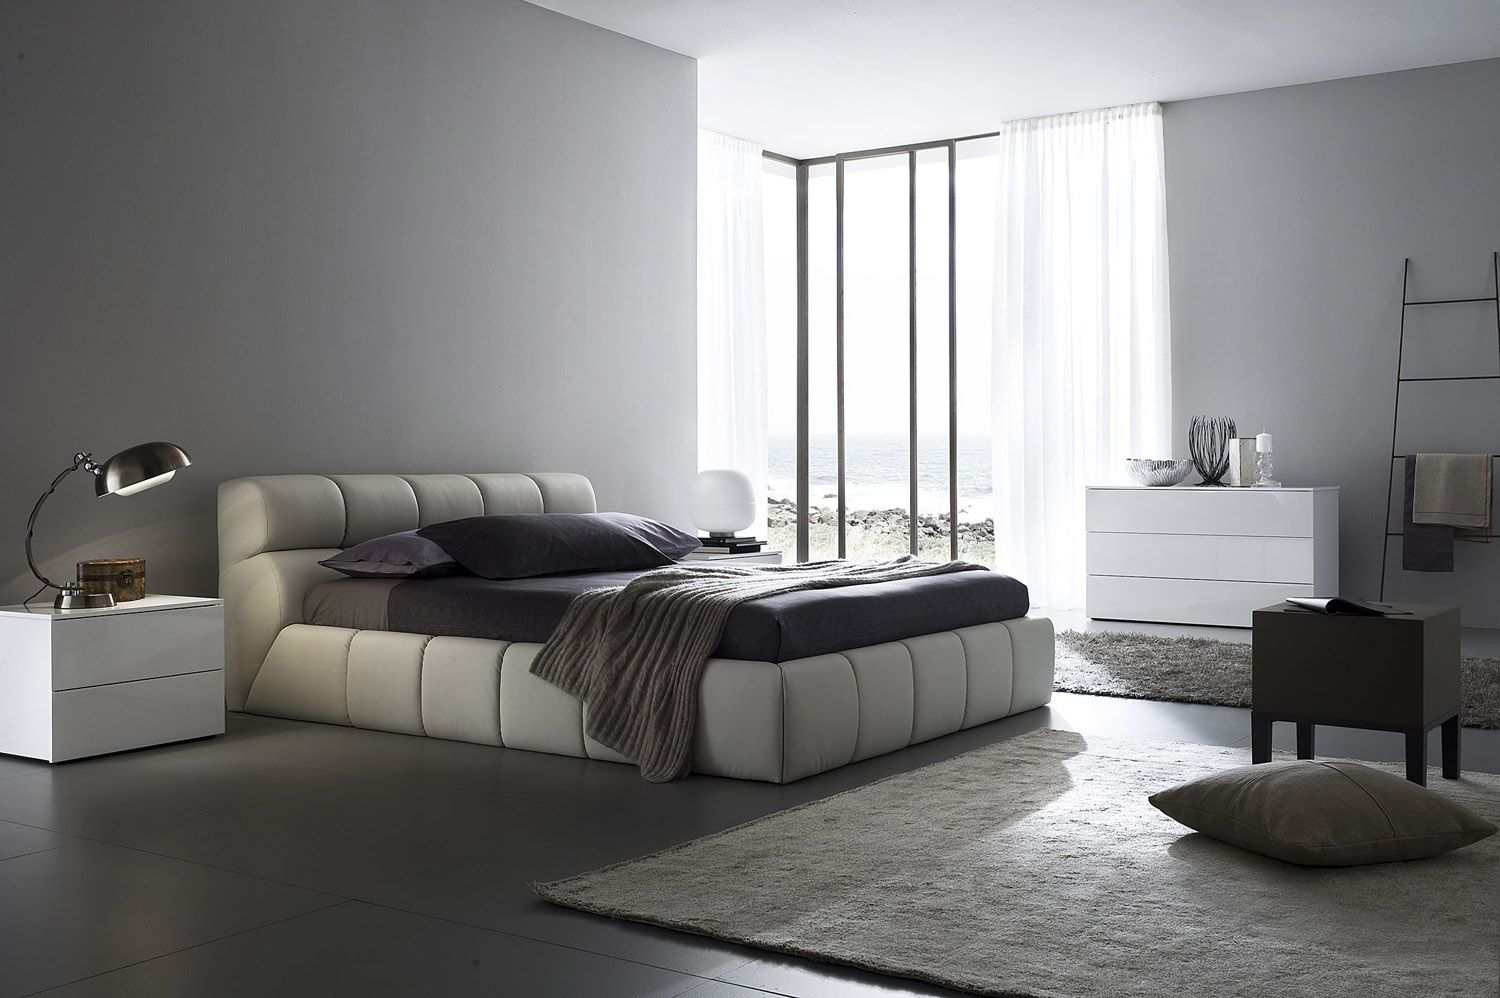 Simple Modern Bedroom Design Magnificent Bedroom Design  Buscar Con Google  Alcobas  Pinterest Design Ideas